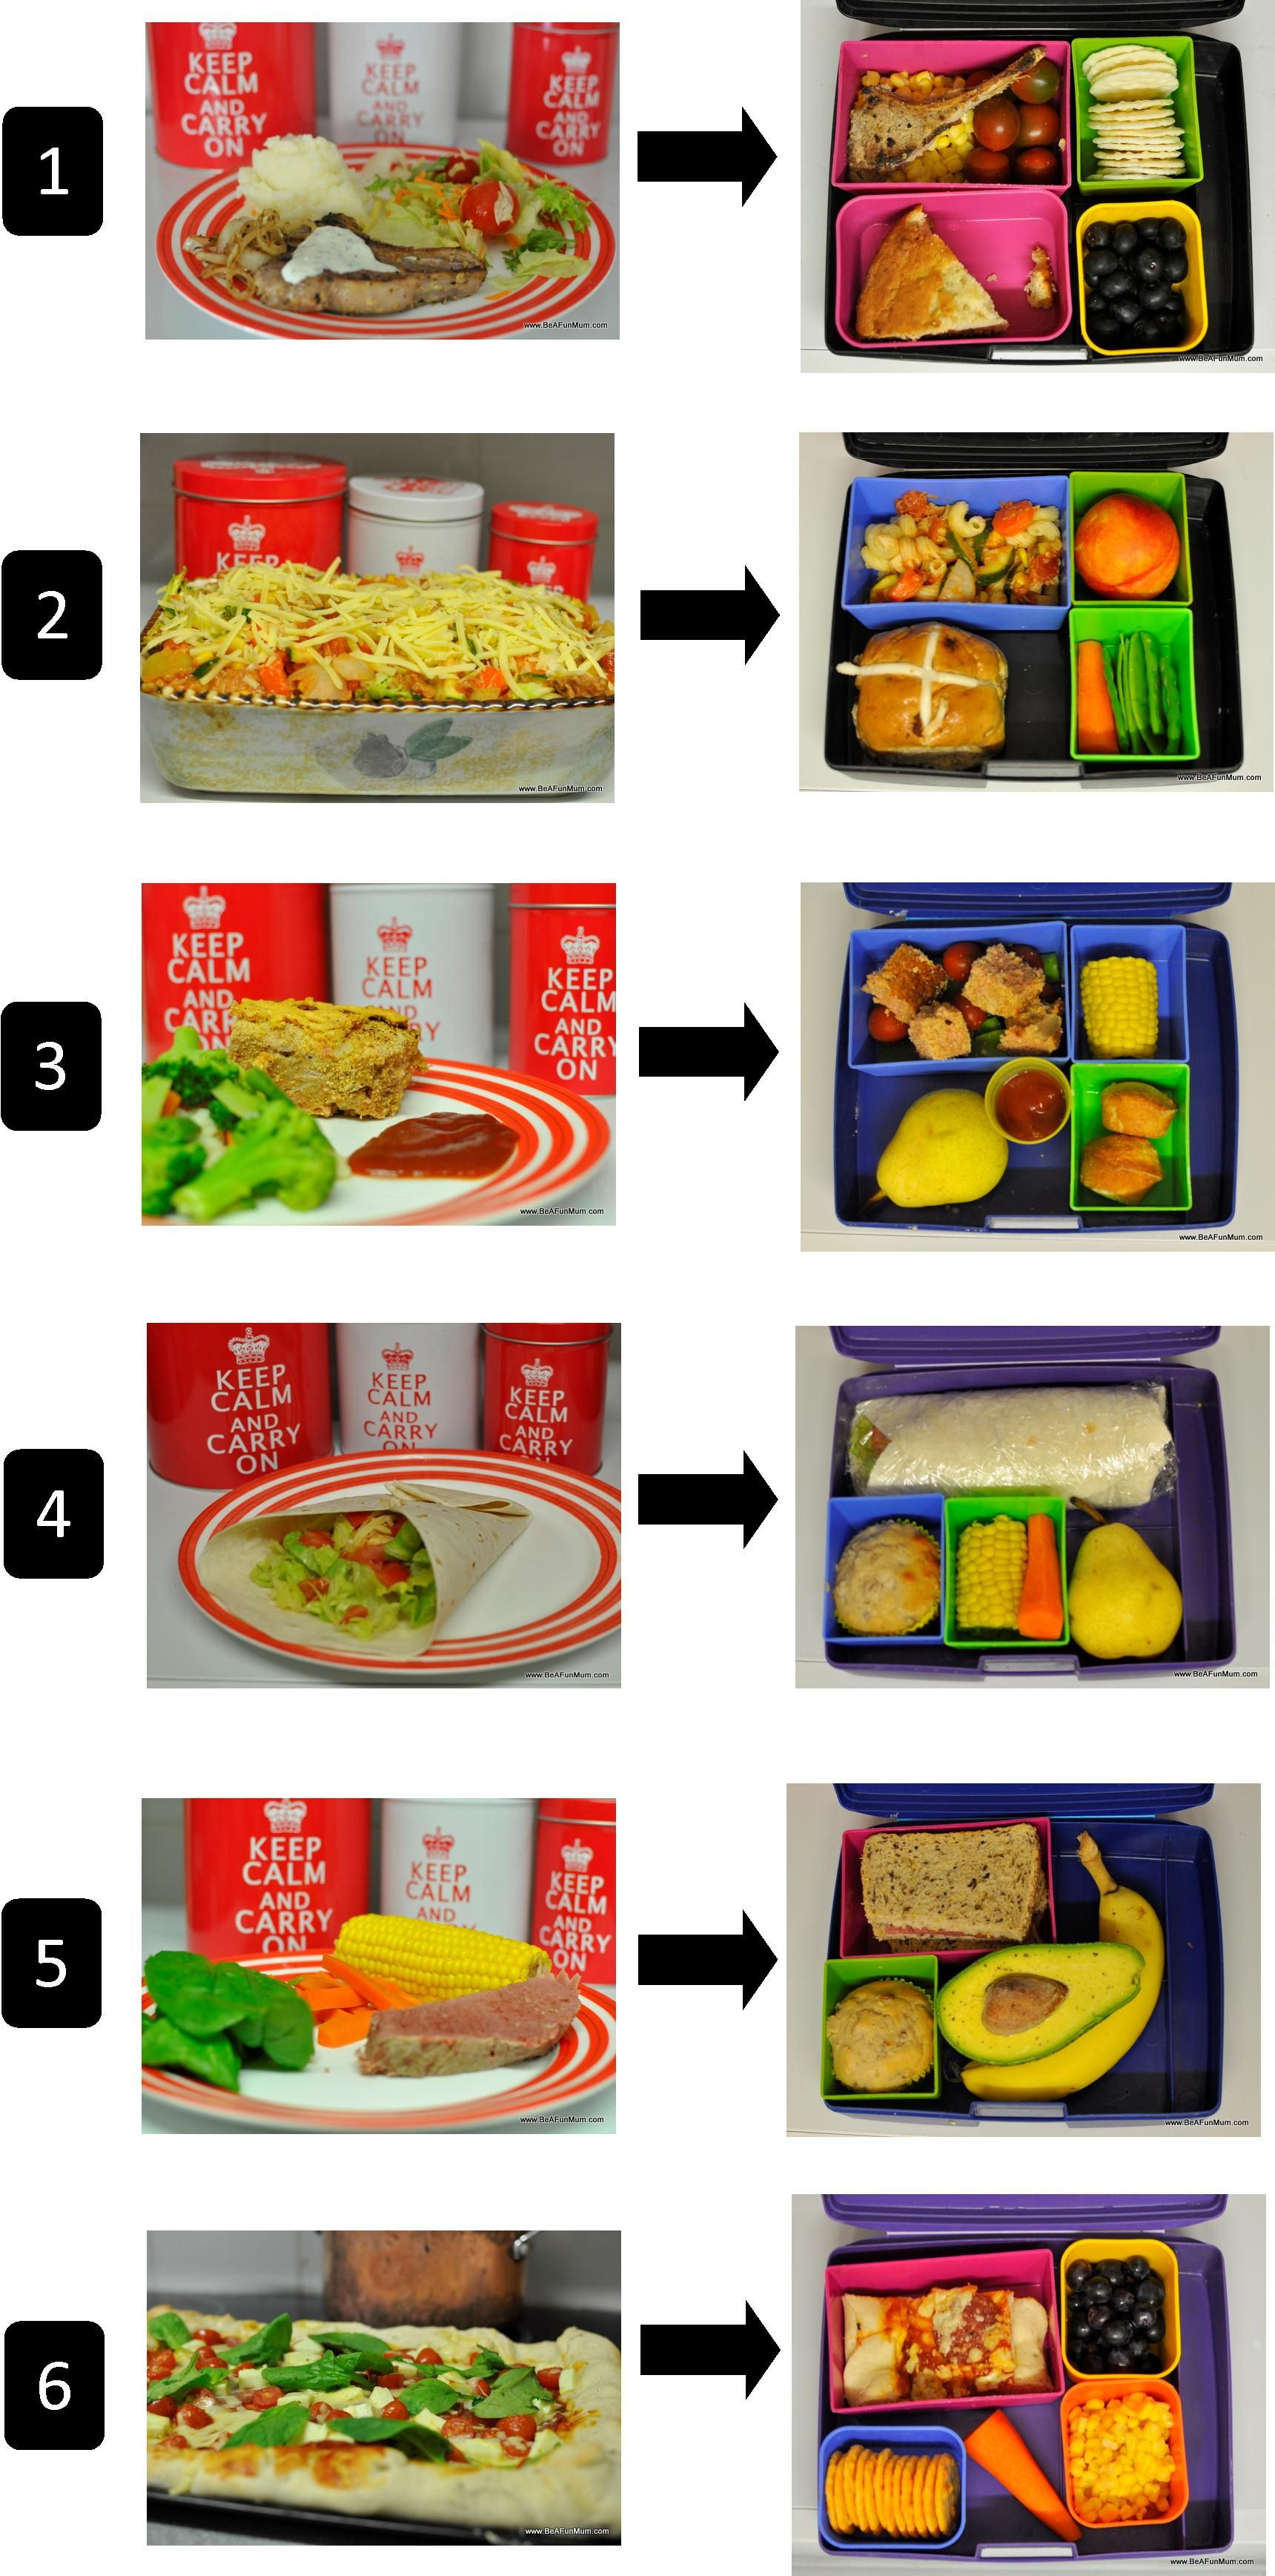 Lunch Box Ideaslink For Fruit Salad Muffins On This Page Looks Interesting Change Unhealthy To Healthy